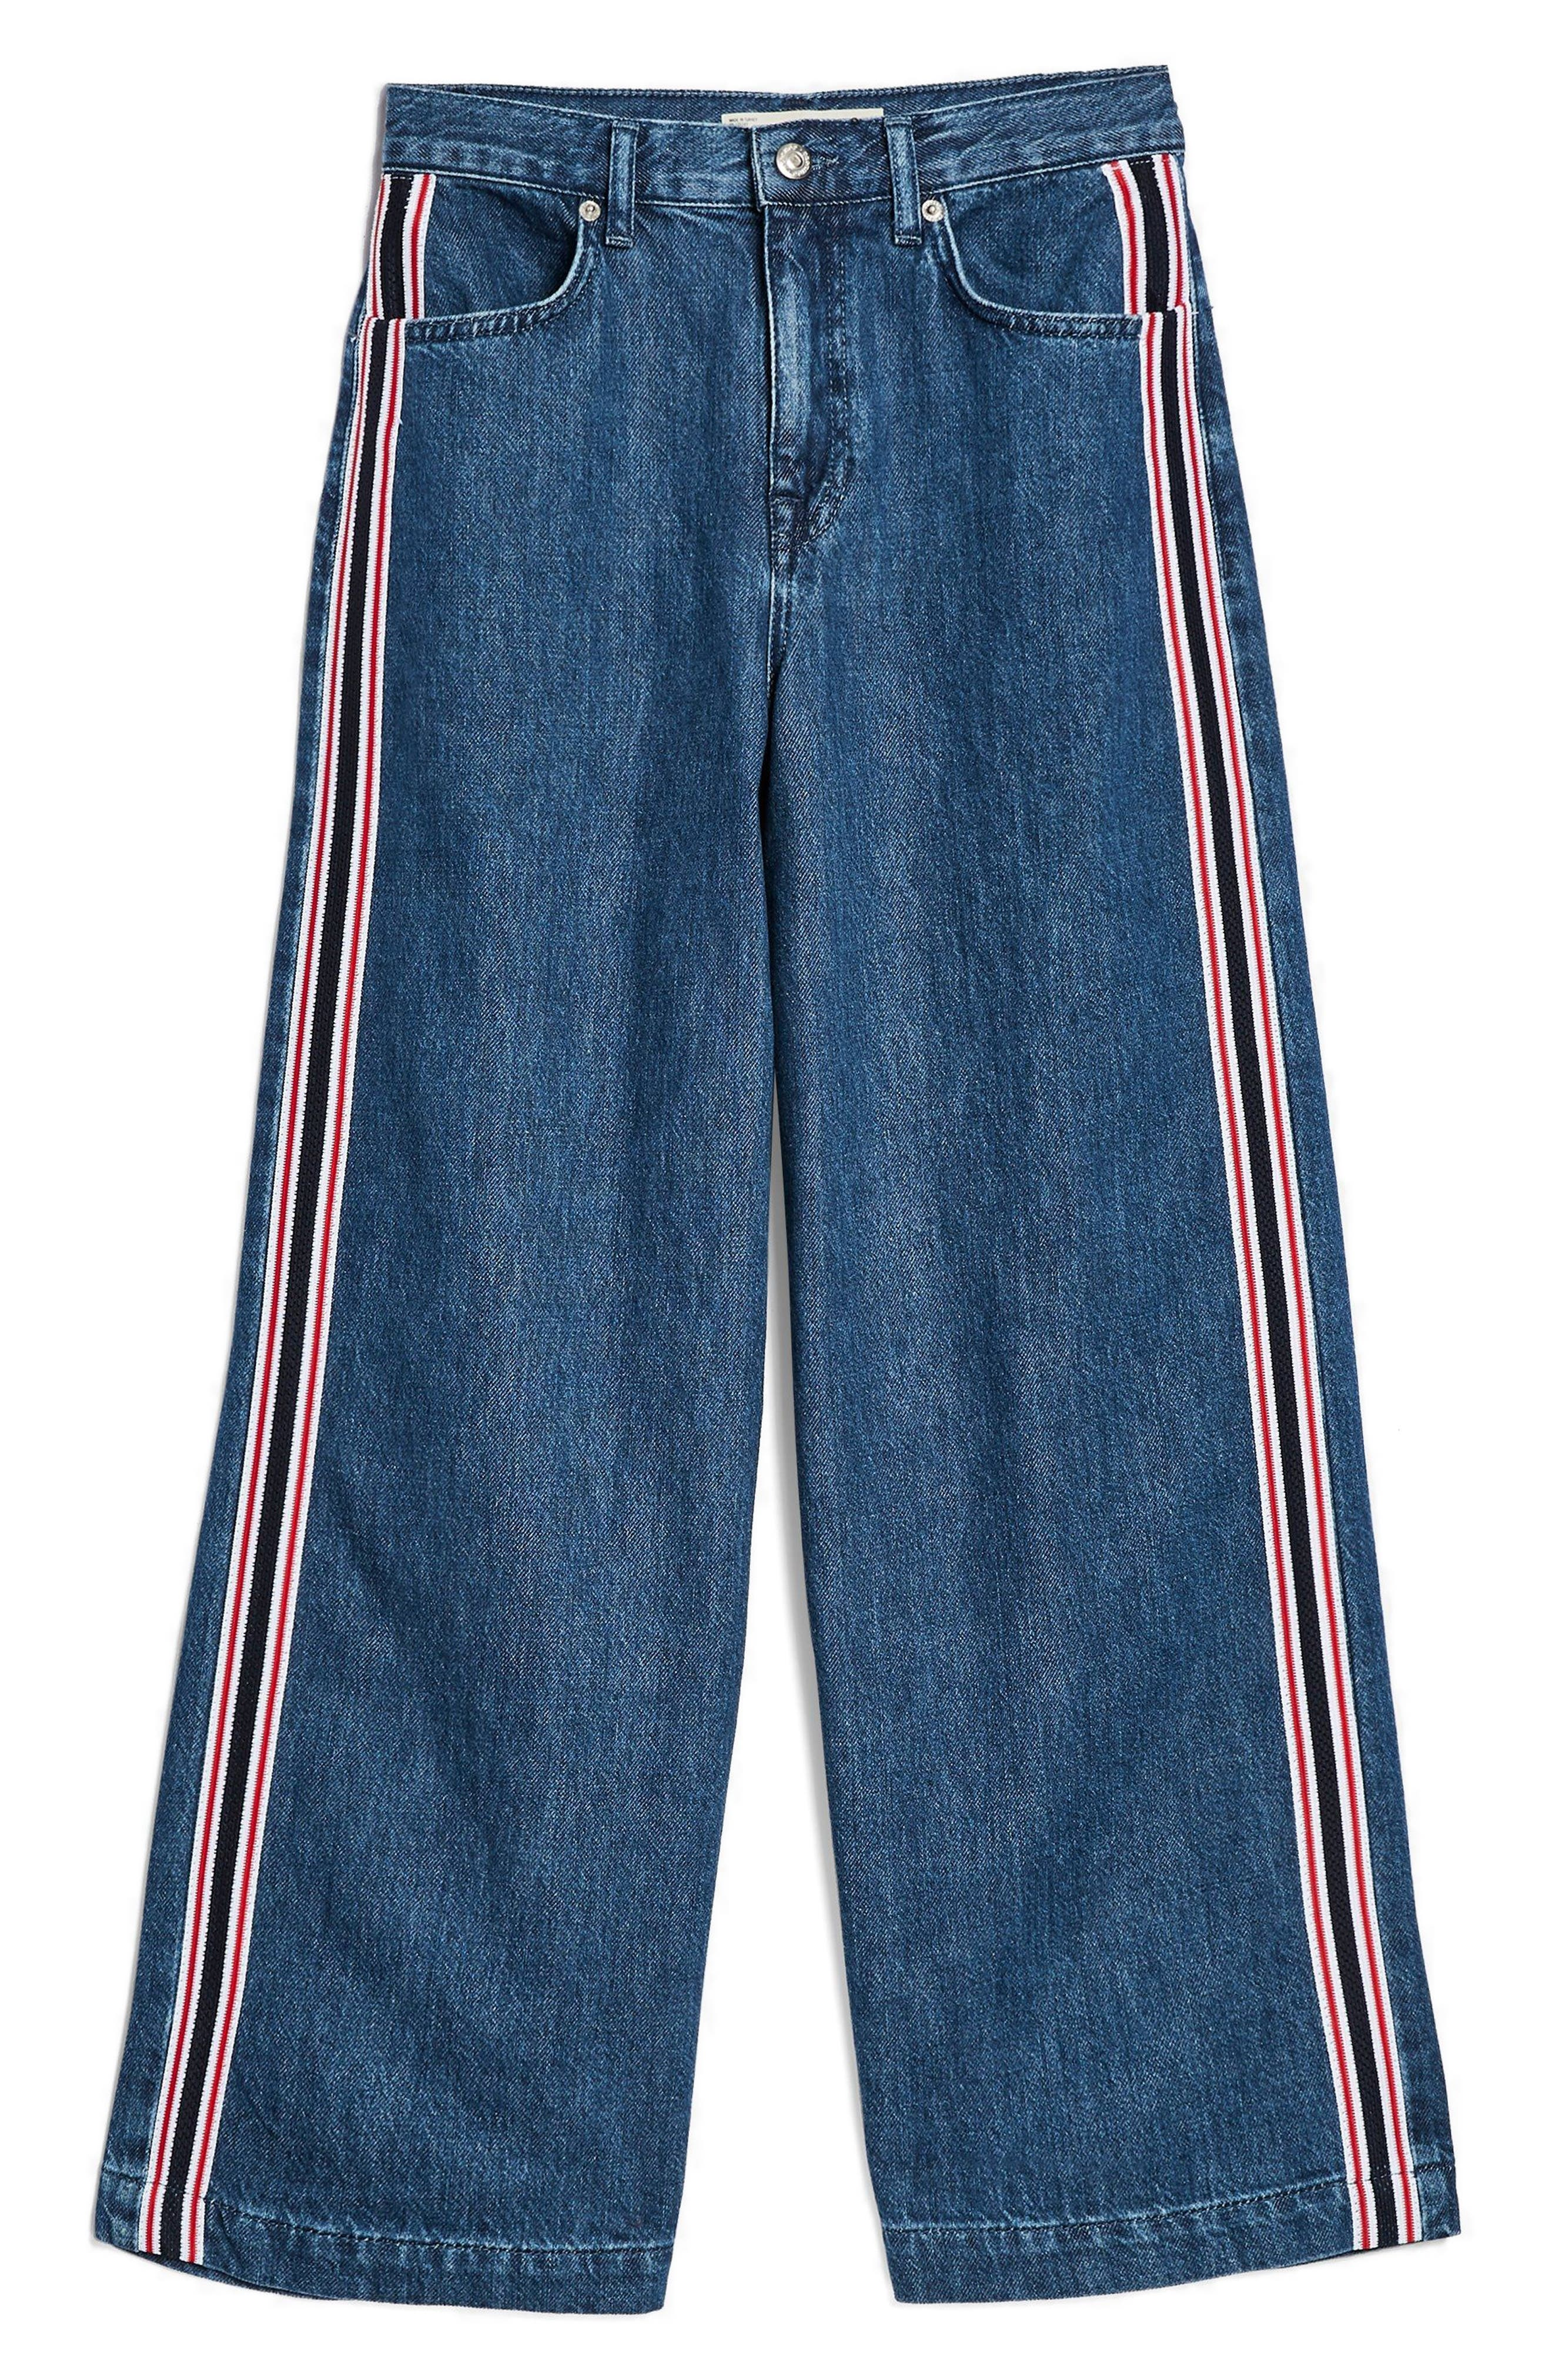 MOTO Stripe Wide Leg Non-Stretch Jeans,                             Alternate thumbnail 3, color,                             Blue Multi